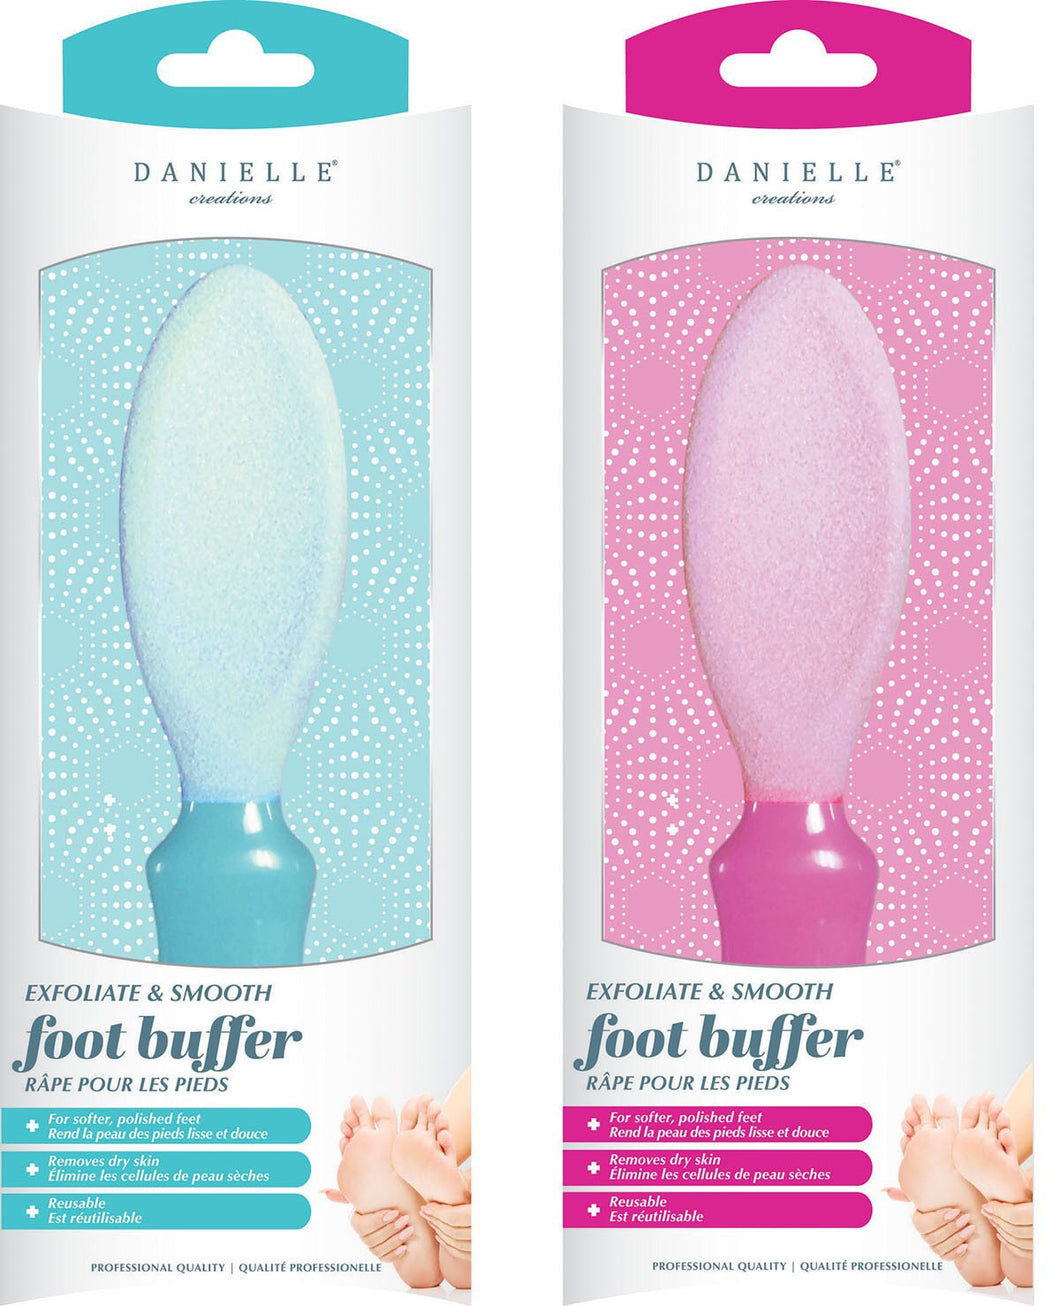 Danielle Exfoliate & Smooth Foot Buffer